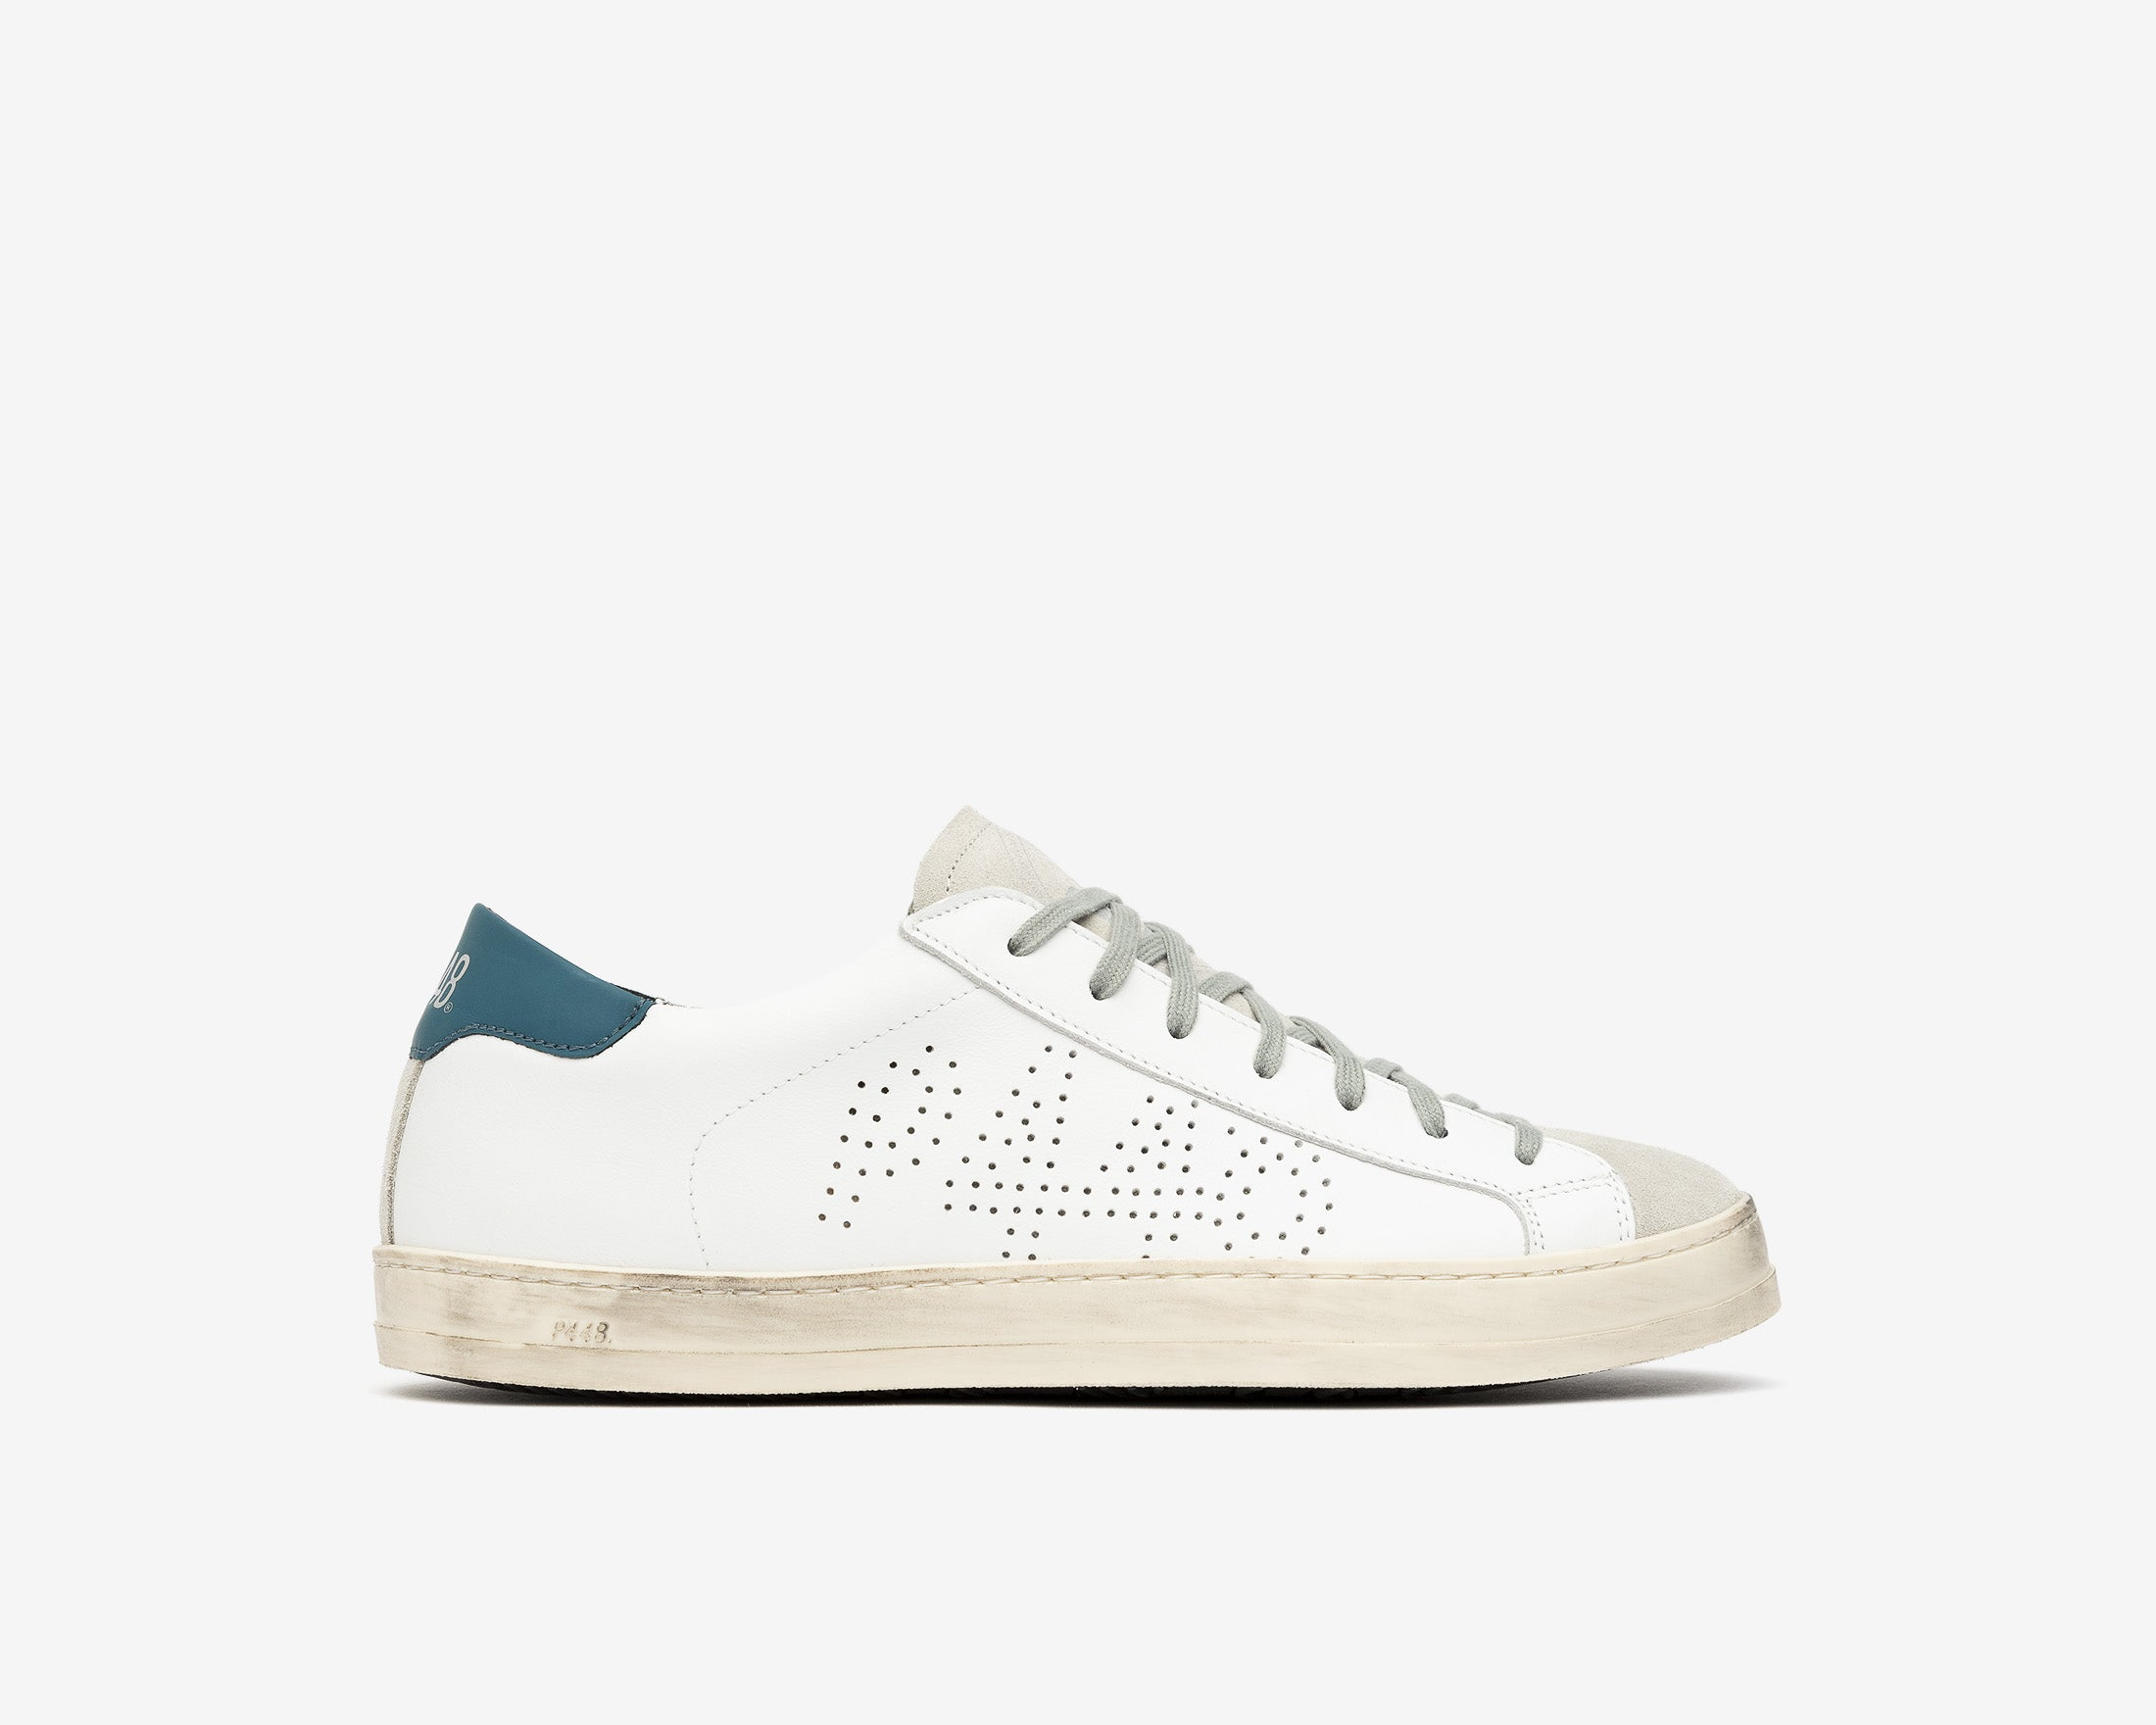 John Low-Top Sneaker in White/Green - Profile